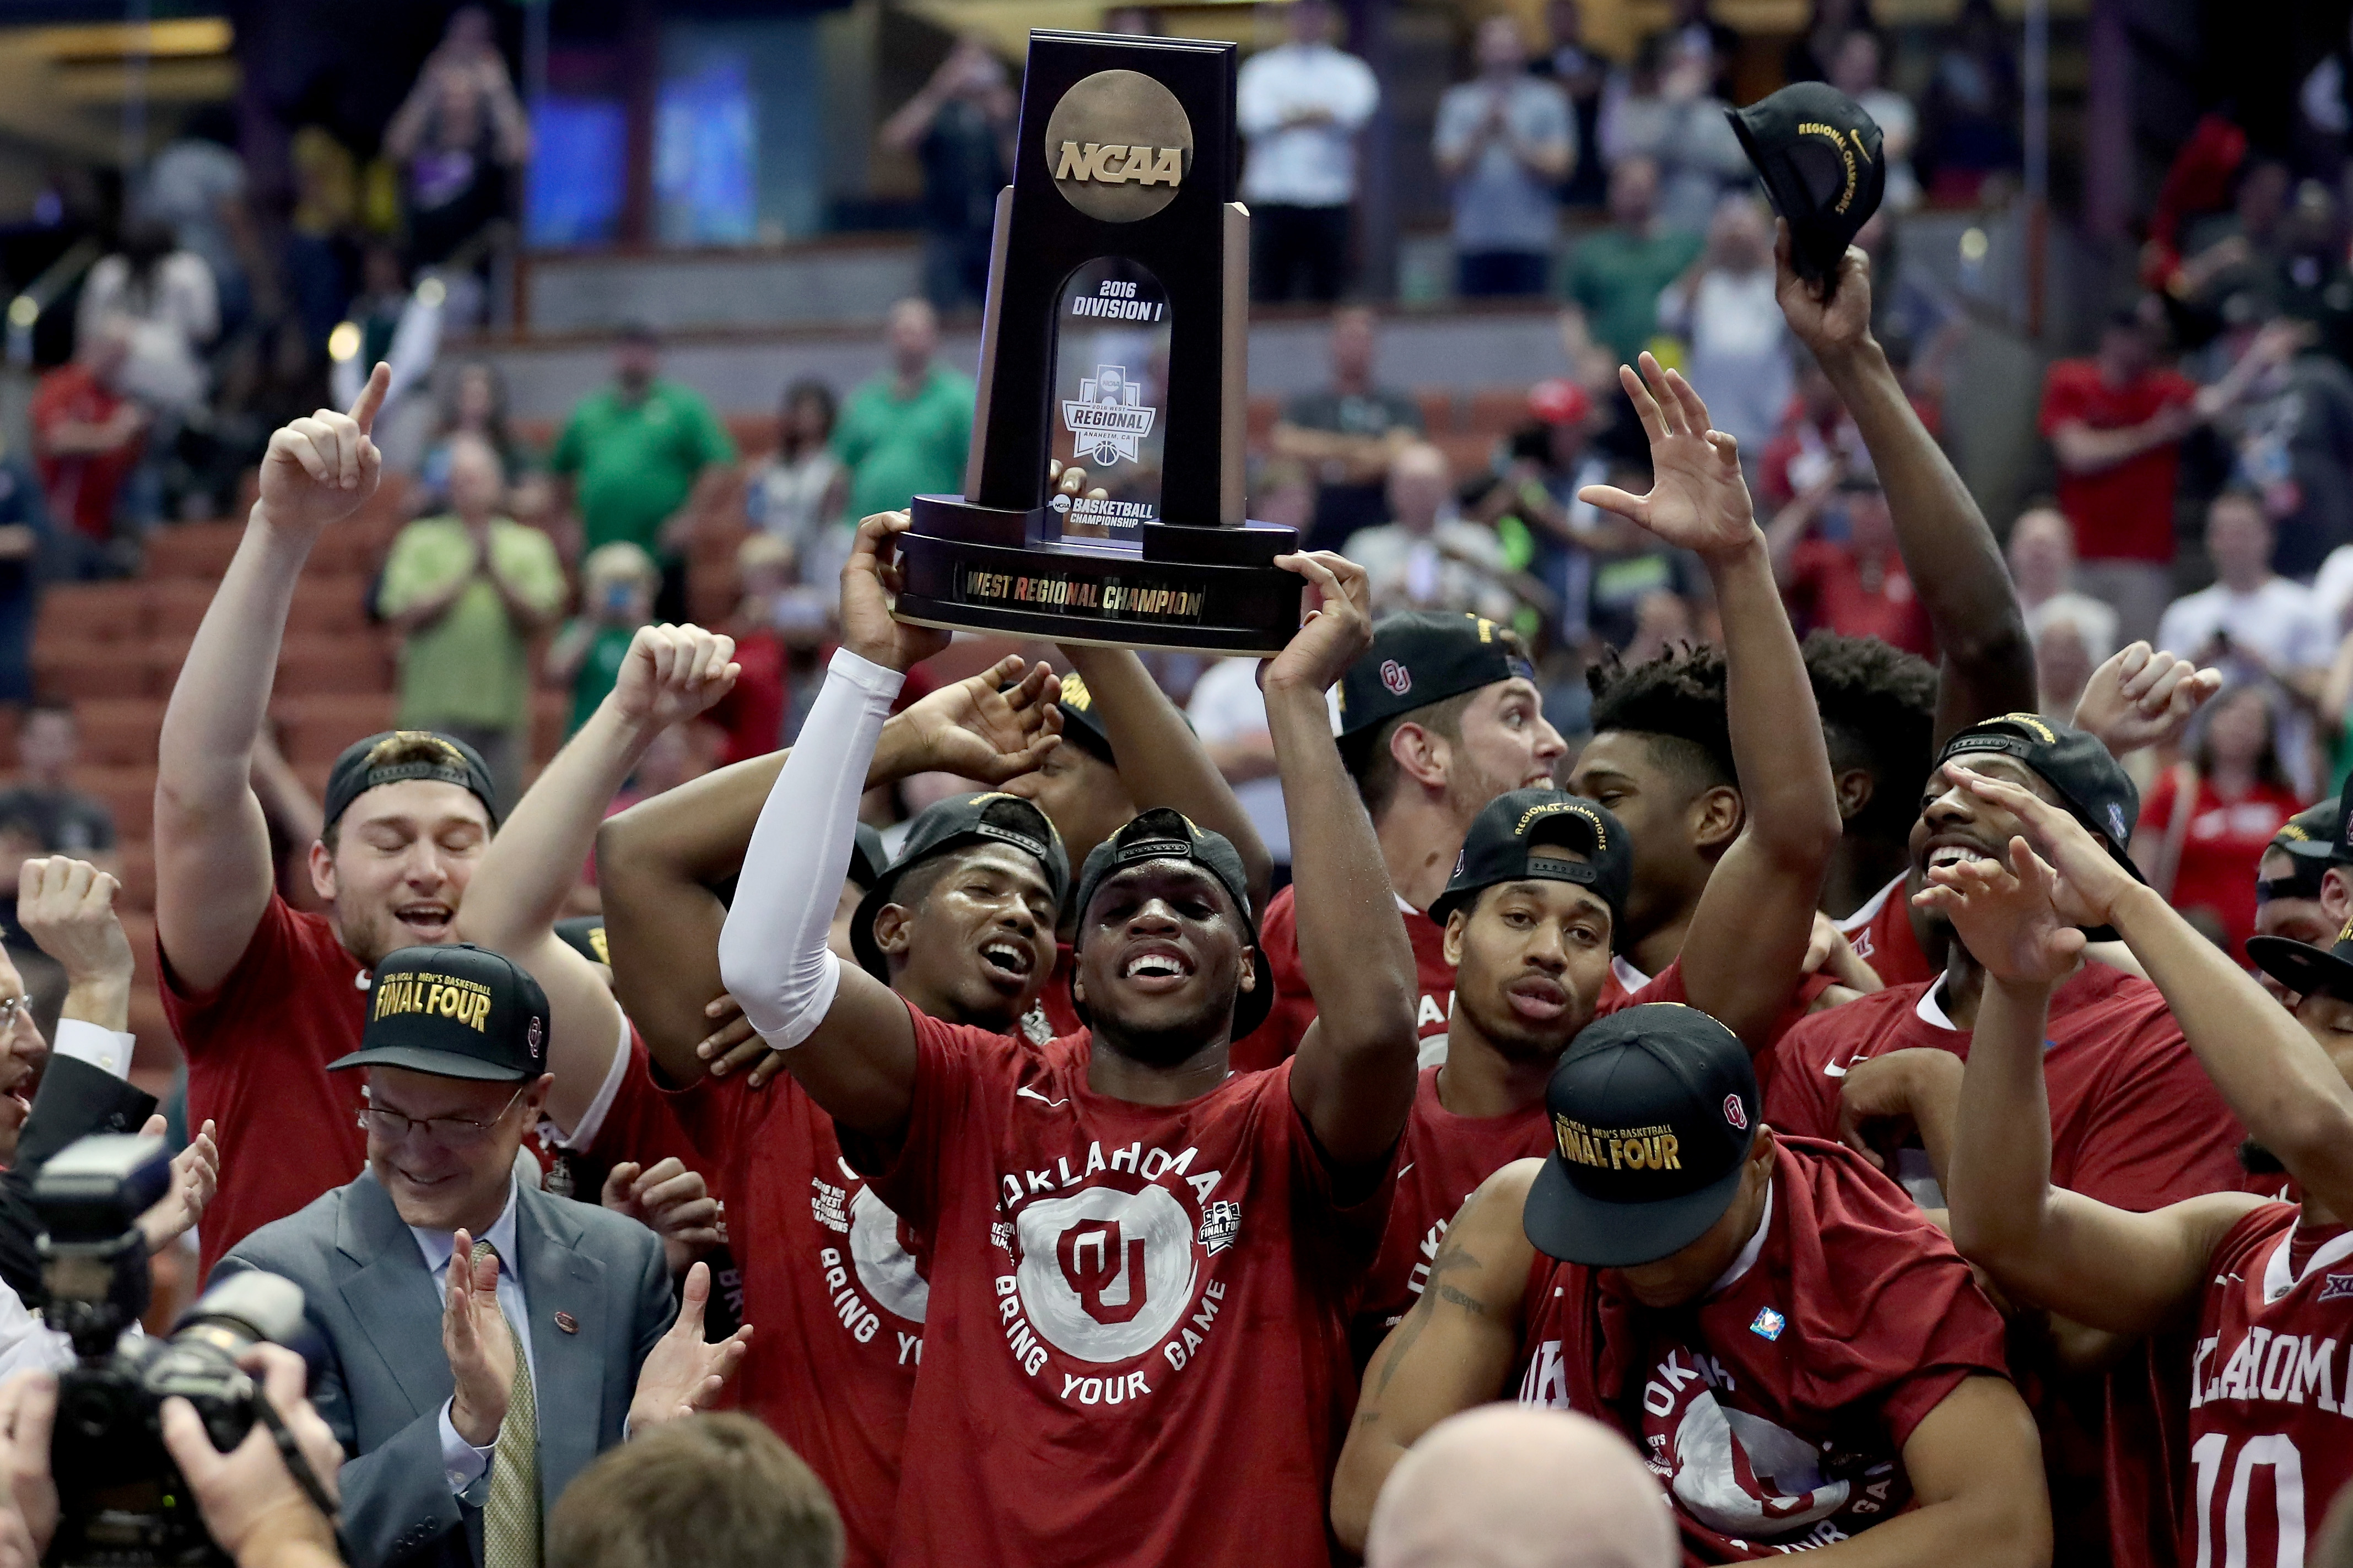 ANAHEIM, CA - MARCH 26:  Buddy Hield #24 of the Oklahoma Sooners holds up the West Regional trophy after the Sooners 80-68 victory against the Oregon Ducks in the NCAA Men's Basketball Tournament West Regional Final at Honda Center on March 26, 2016 in Anaheim, California.  (Photo by Sean M. Haffey/Getty Images)